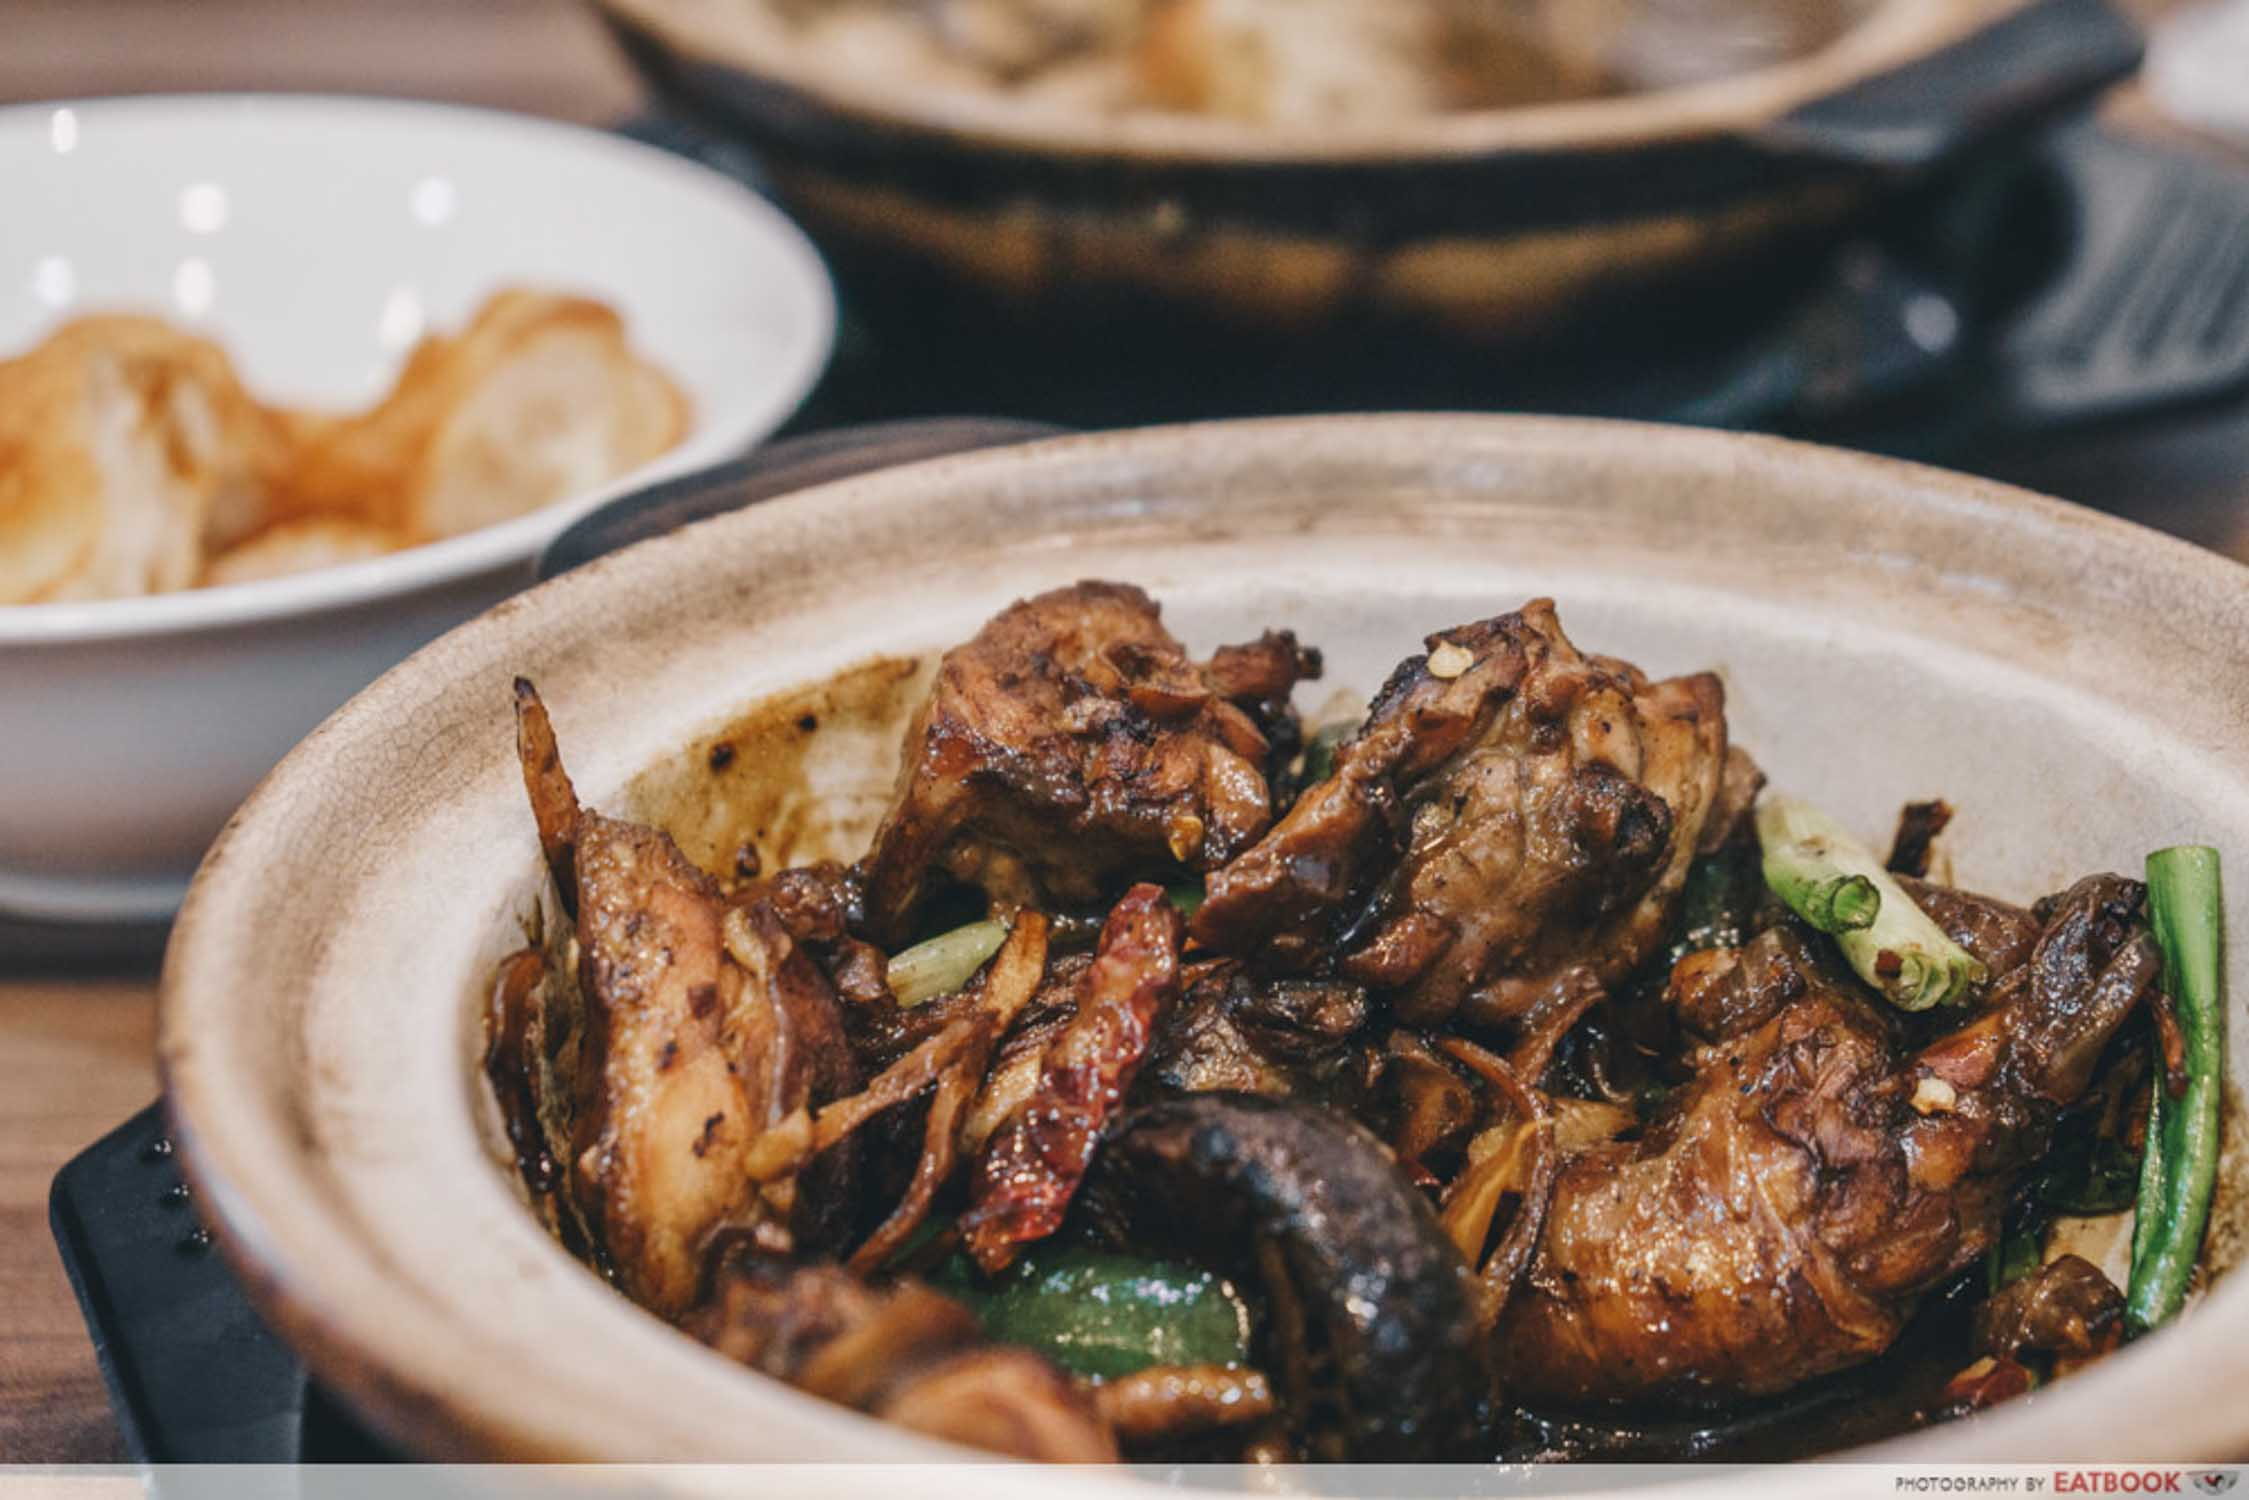 Good Taste Bak Kut Teh - Claypot Chicken Intro